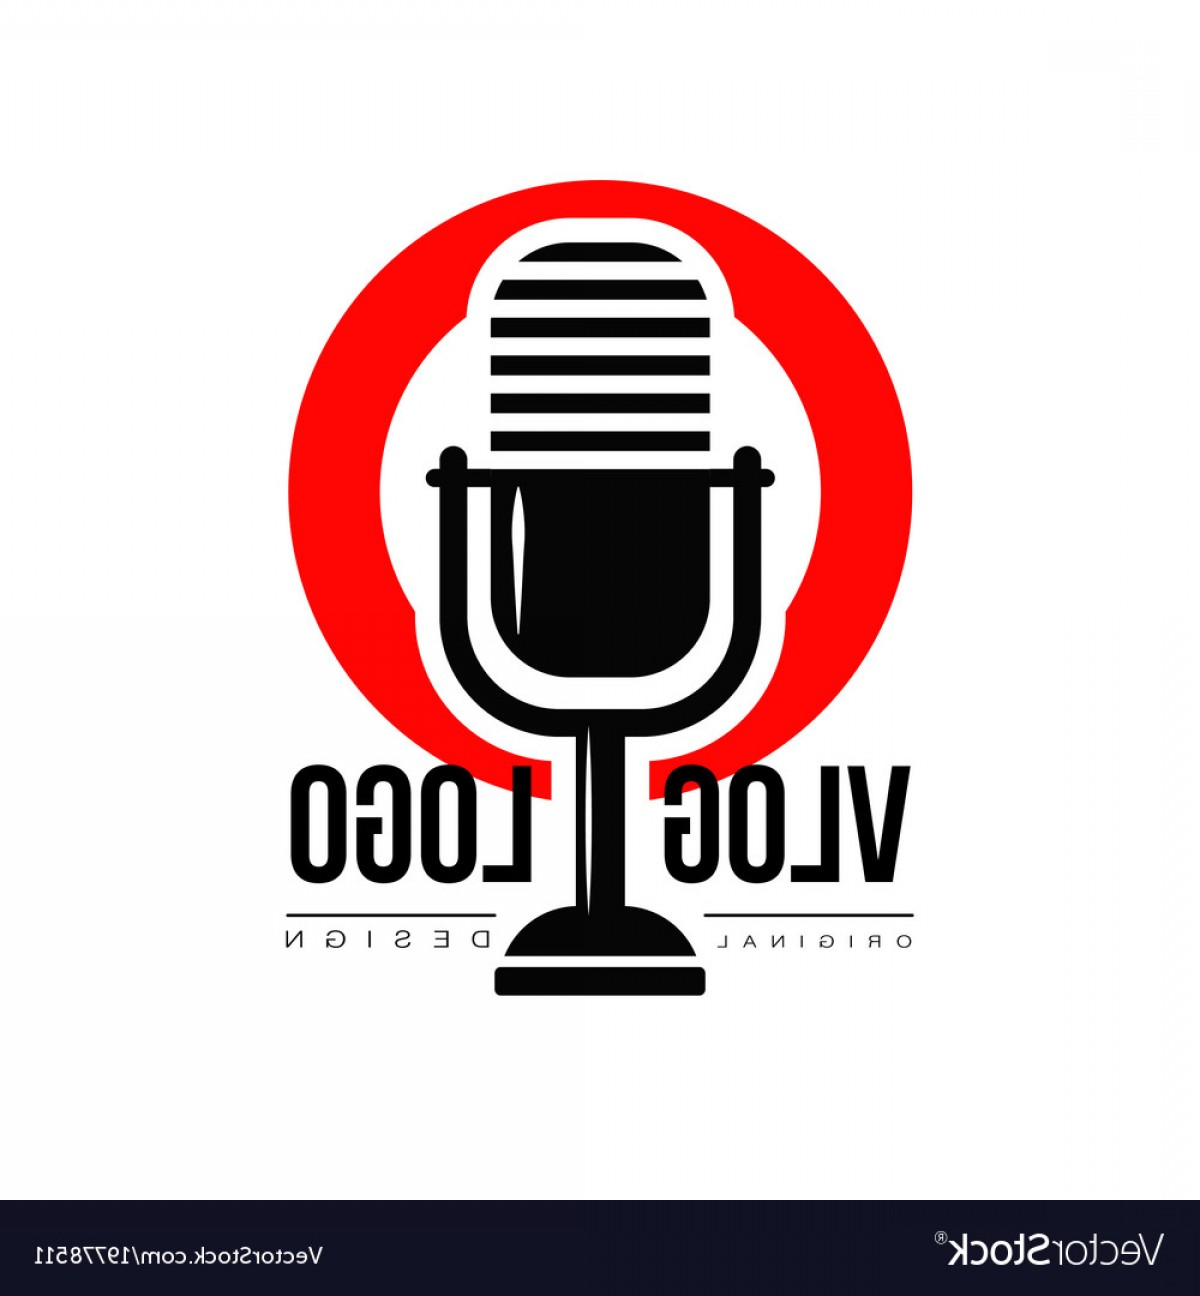 YouTube RedVector Real Life: Interesting Logo With Retro Microphone And Red Vector